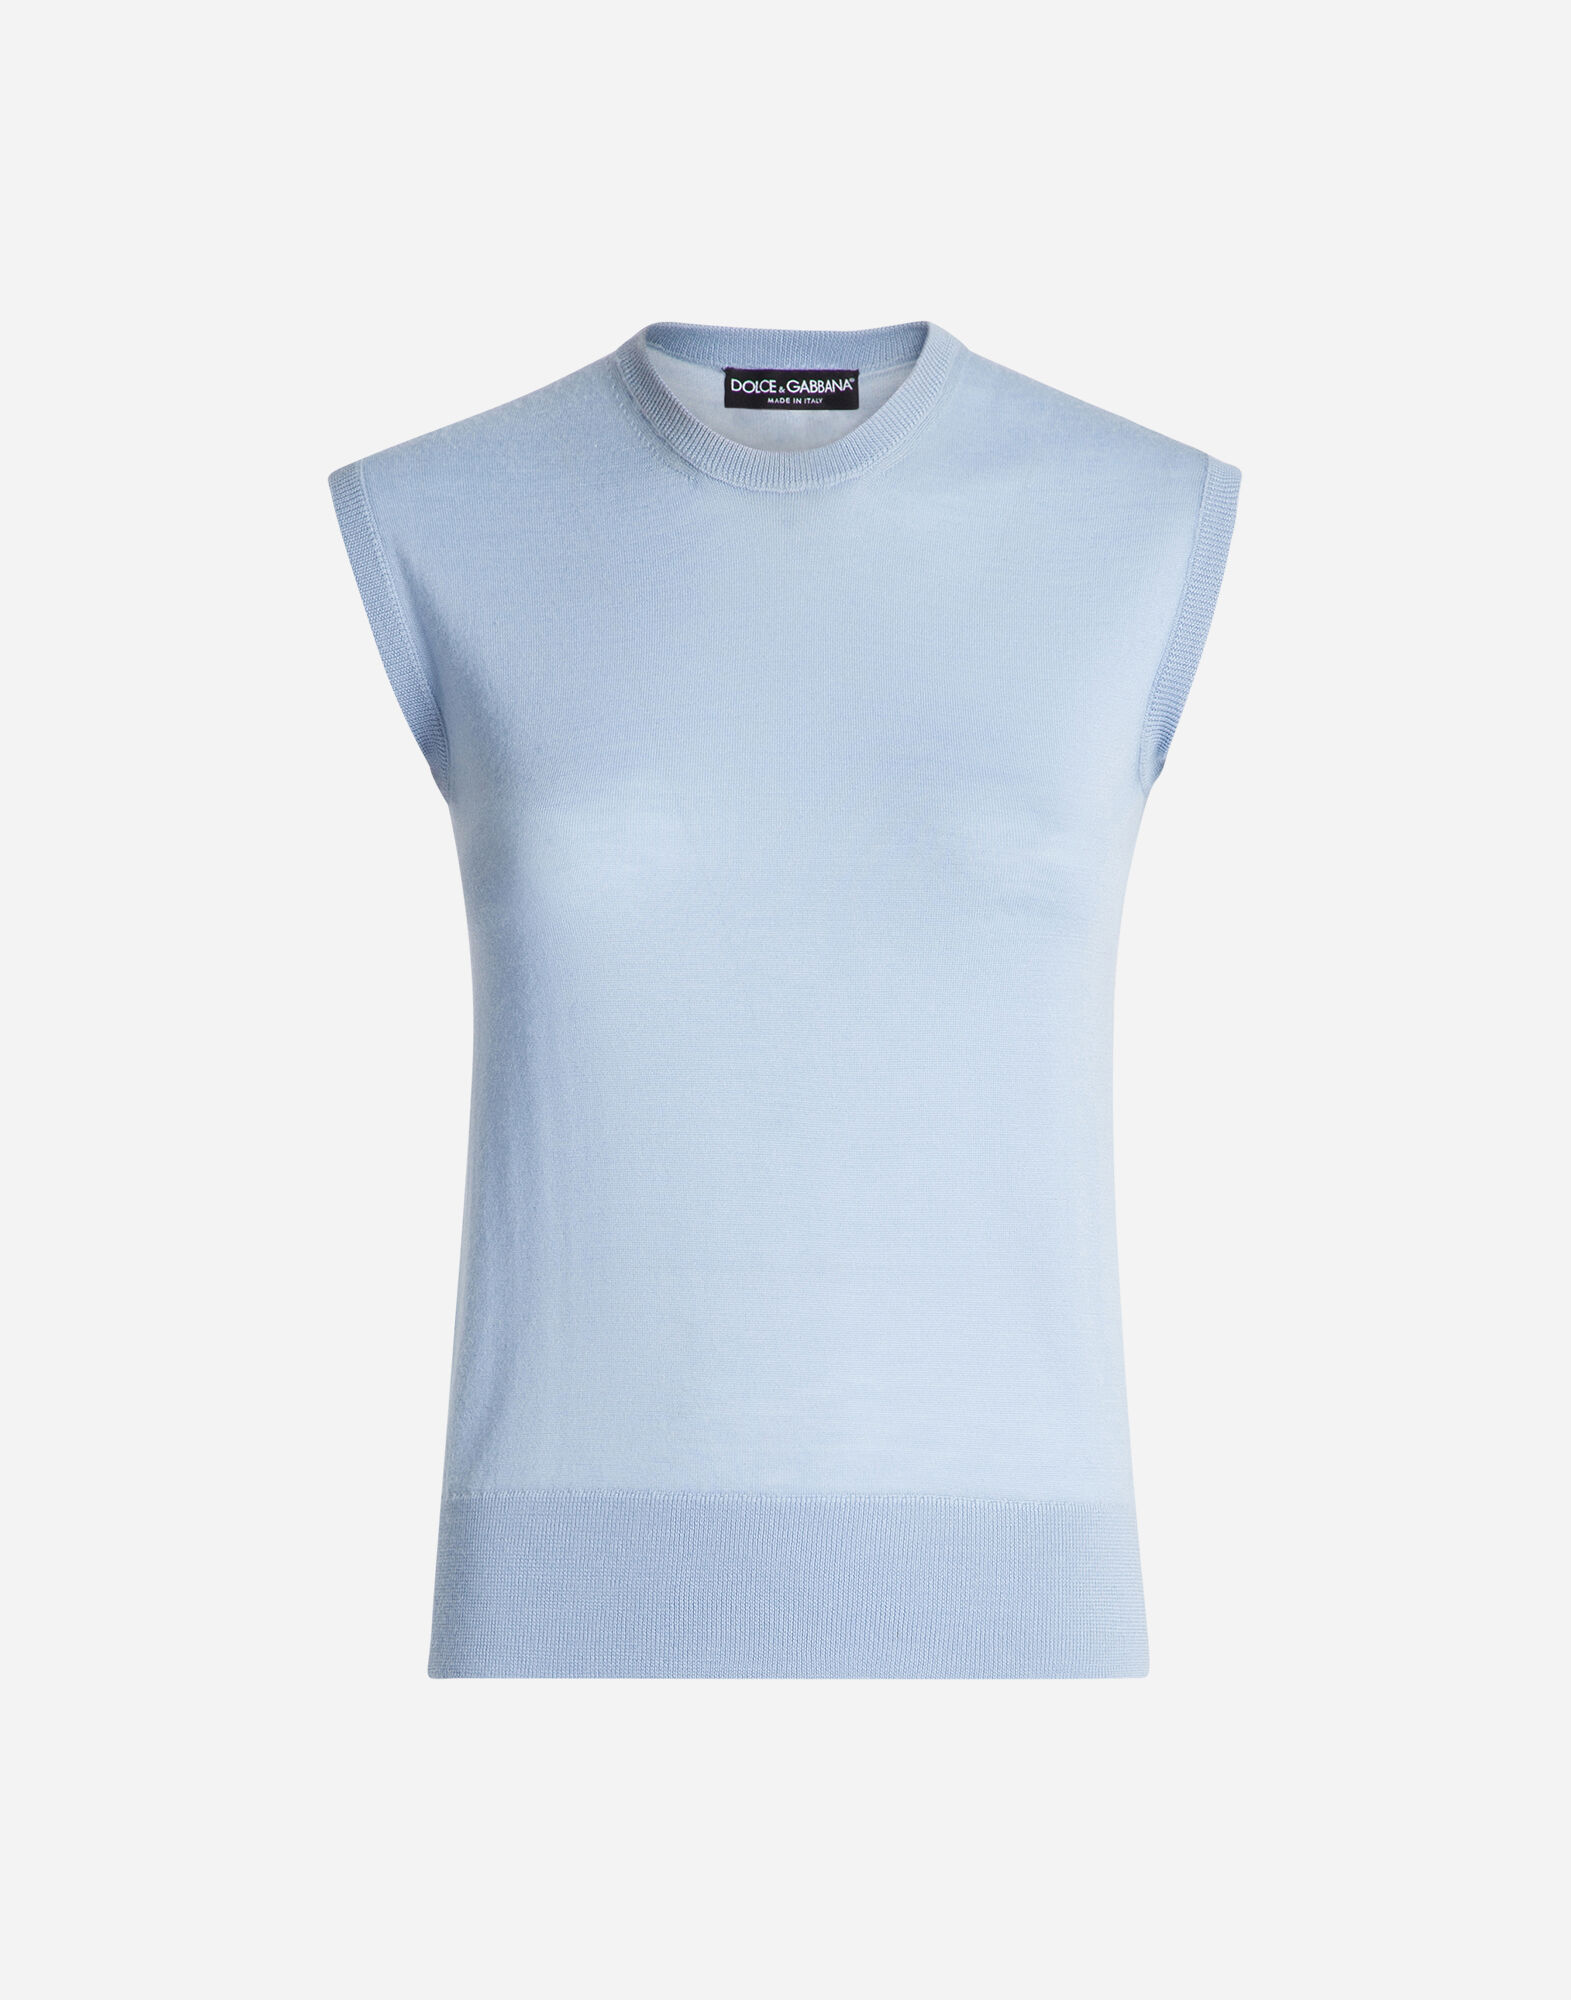 SLEEVELESS CREW NECK SWEATSHIRT IN CASHMERE